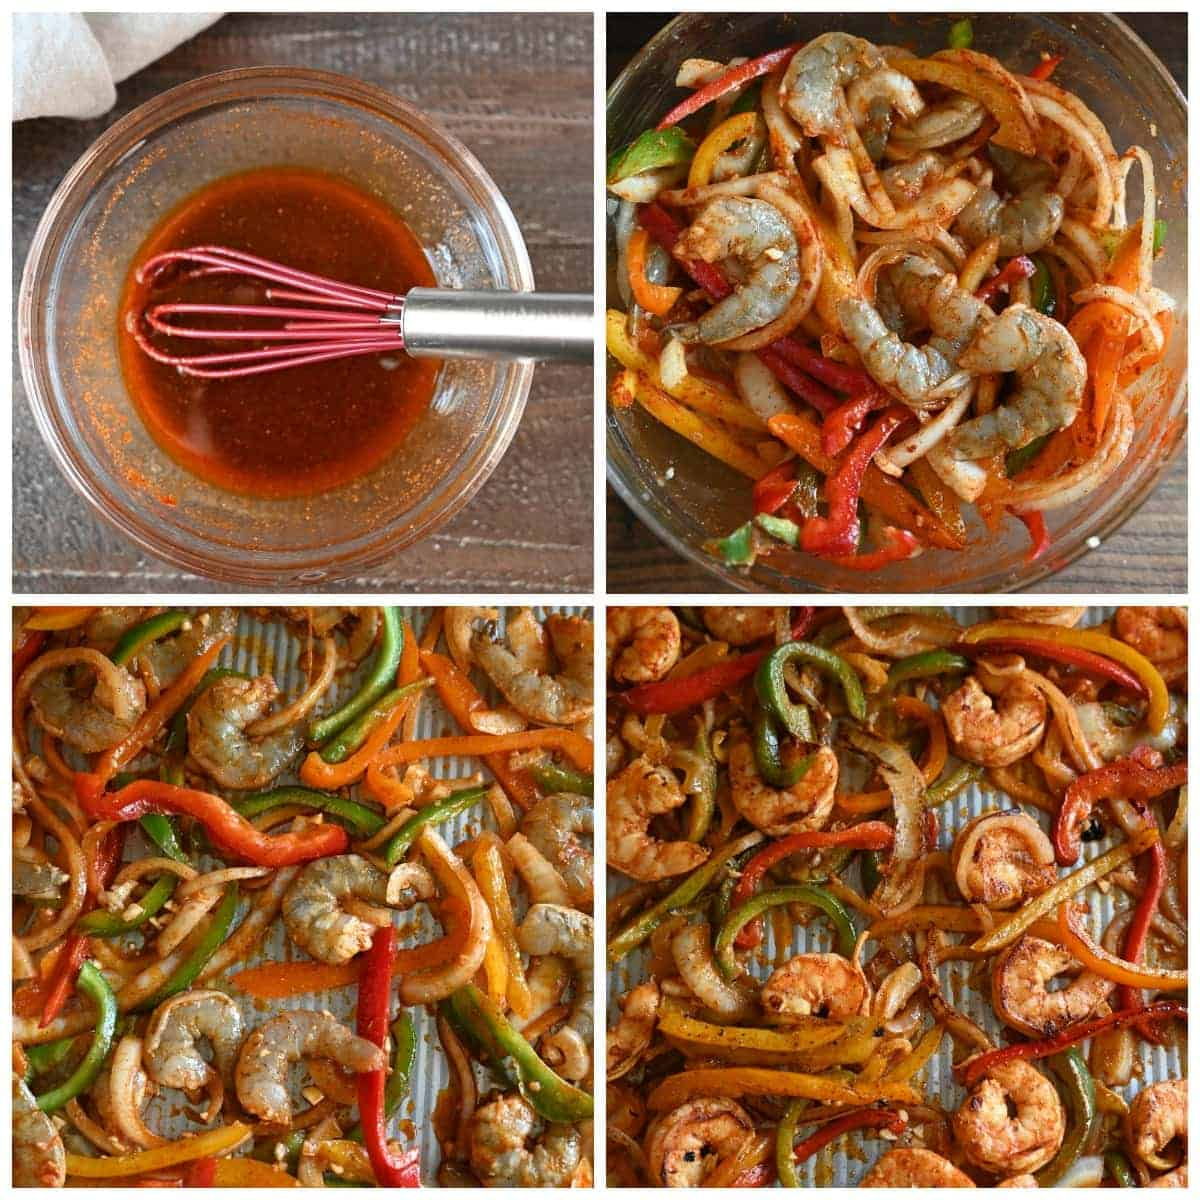 Four process photos. First one, the marinade cajun ingredients all mixed together in a small bowl. Second one, Shrimp and peppers tossed in the marinade all in a bowl. Thirn one, the peppers and shrimp all spread out onto a baking sheet. Fourth one, just our of the oven everything cooked to perfection.